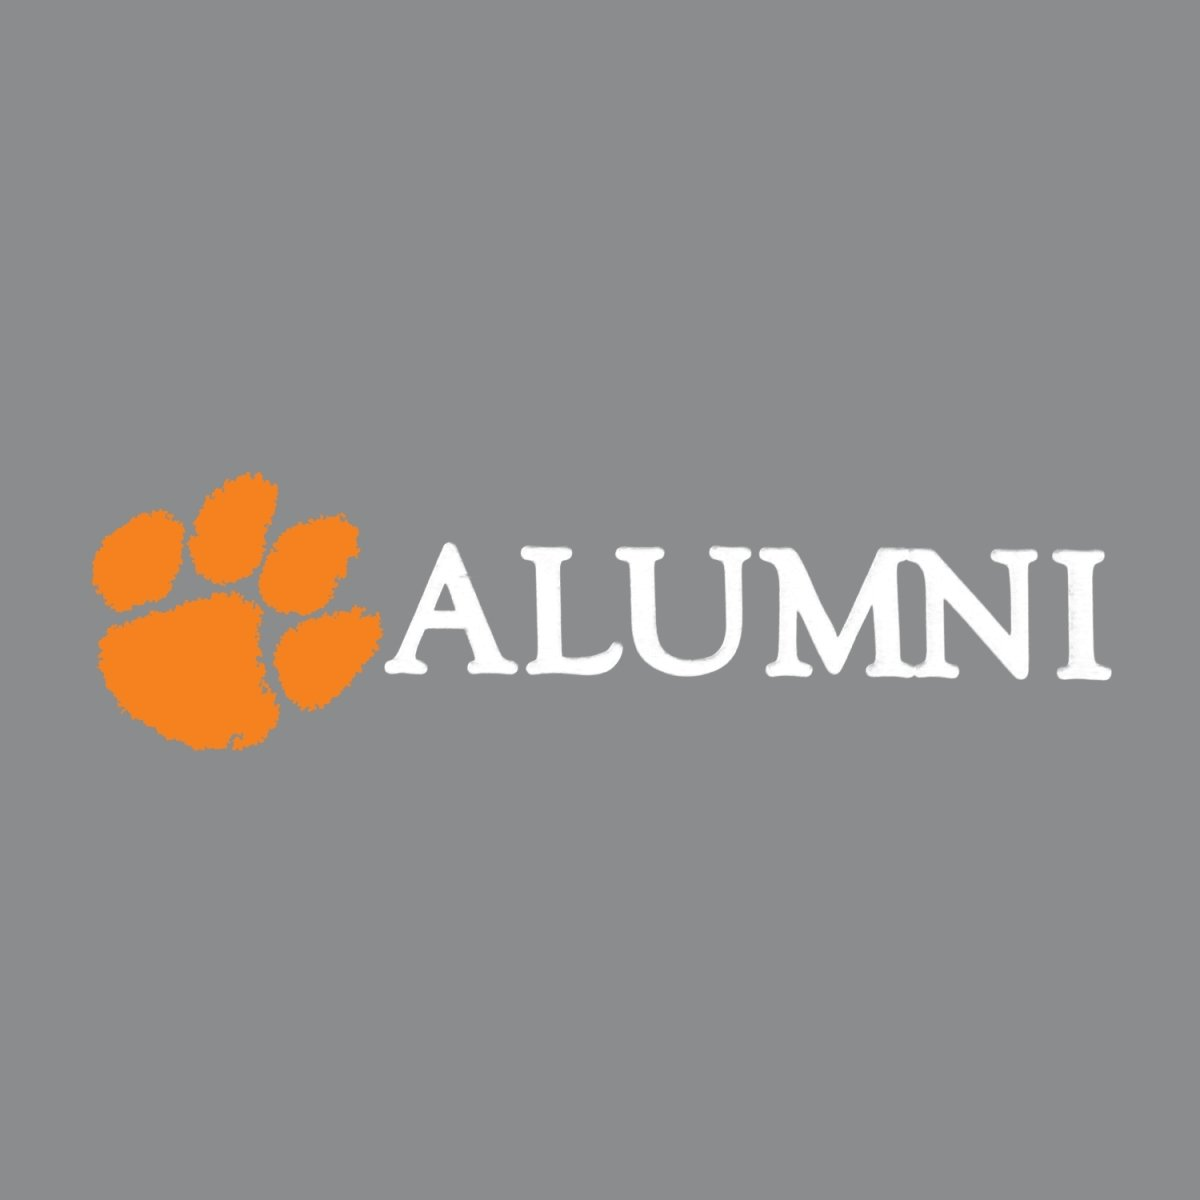 "SDS Design Clemson Paw and Text 6"" Decal - Mr. Knickerbocker"